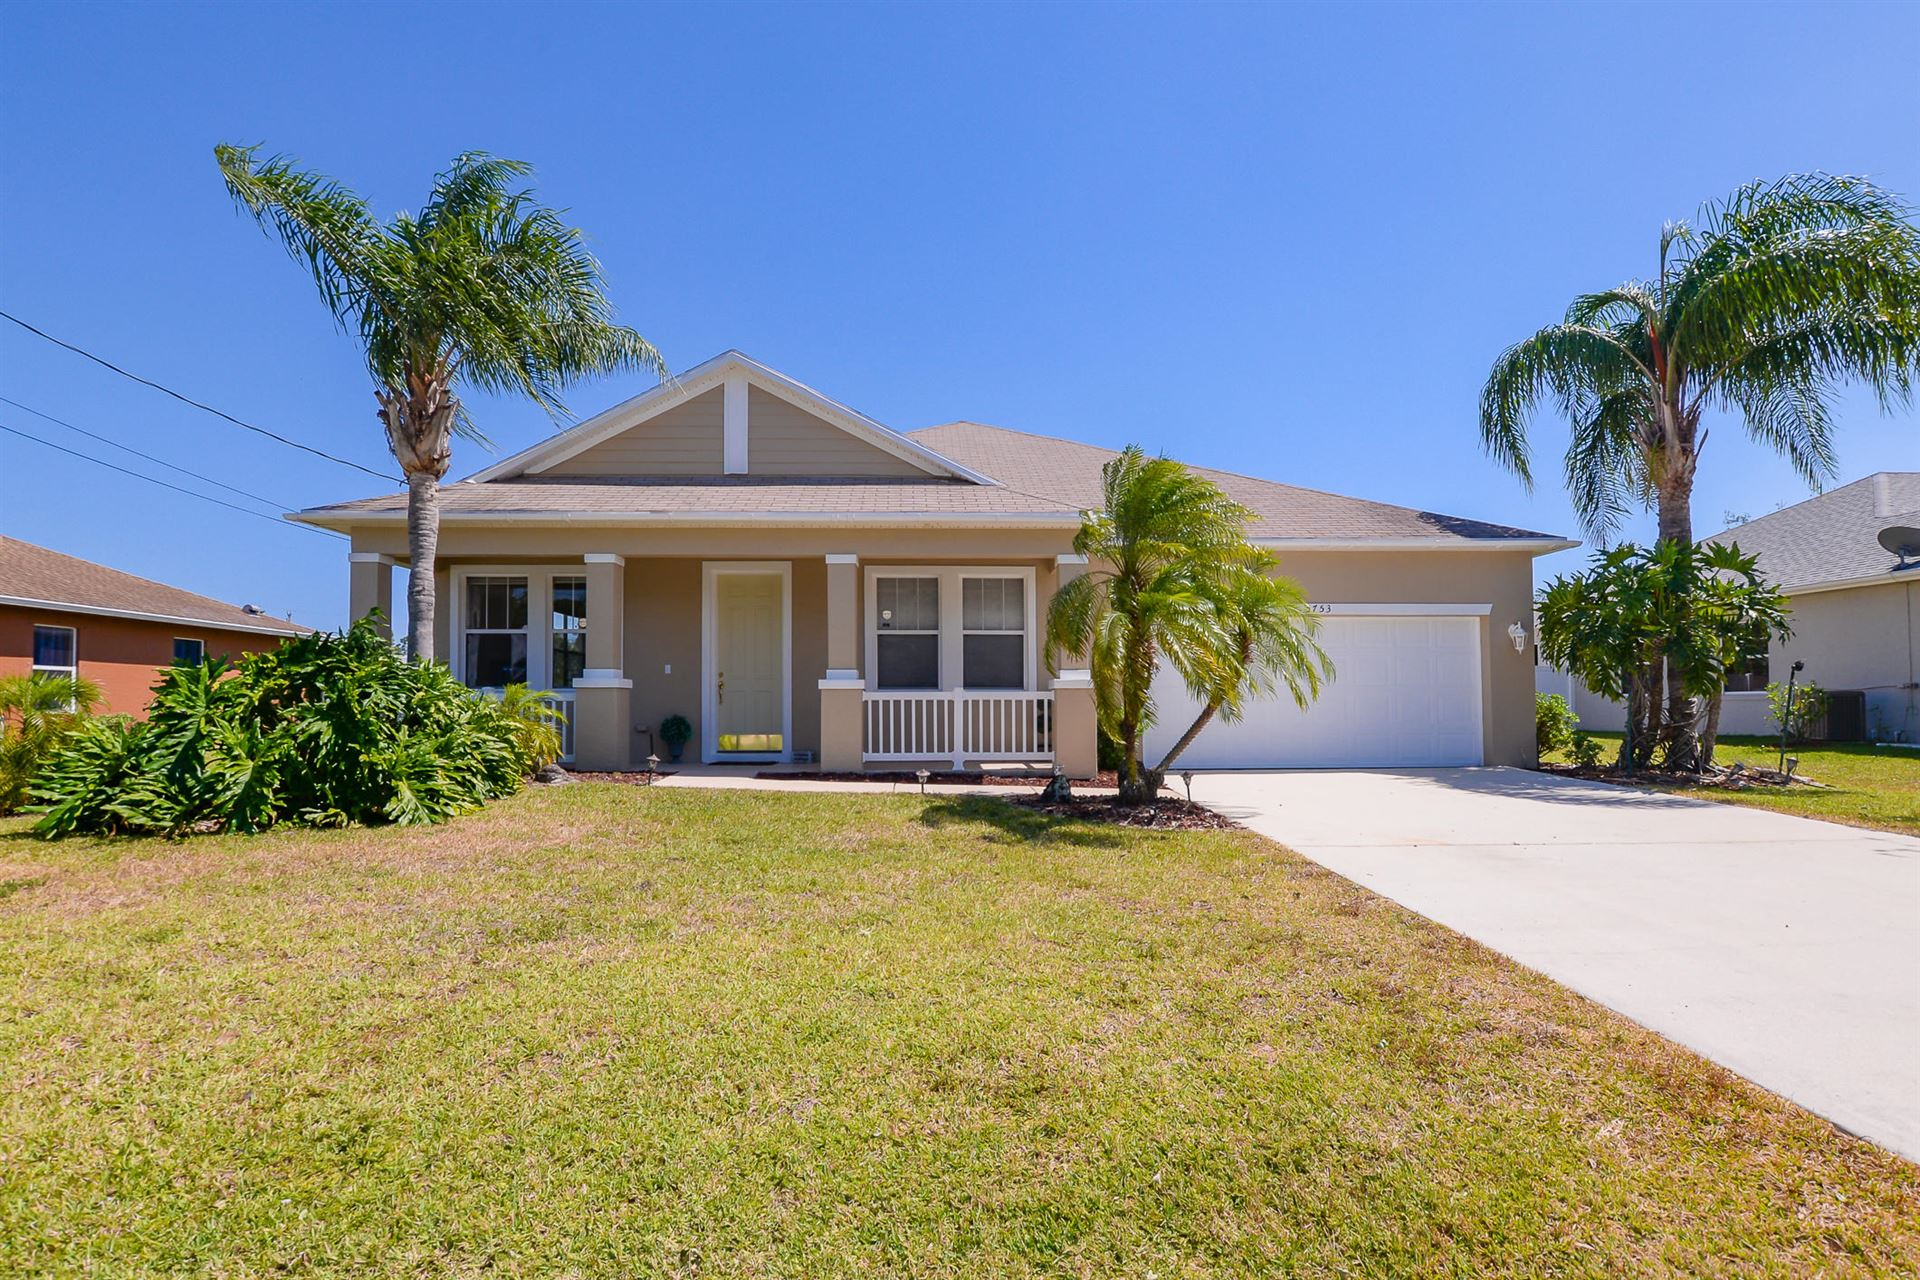 5753 NW Belwood Circle, Port Saint Lucie, FL 34986 - MLS#: RX-10708259